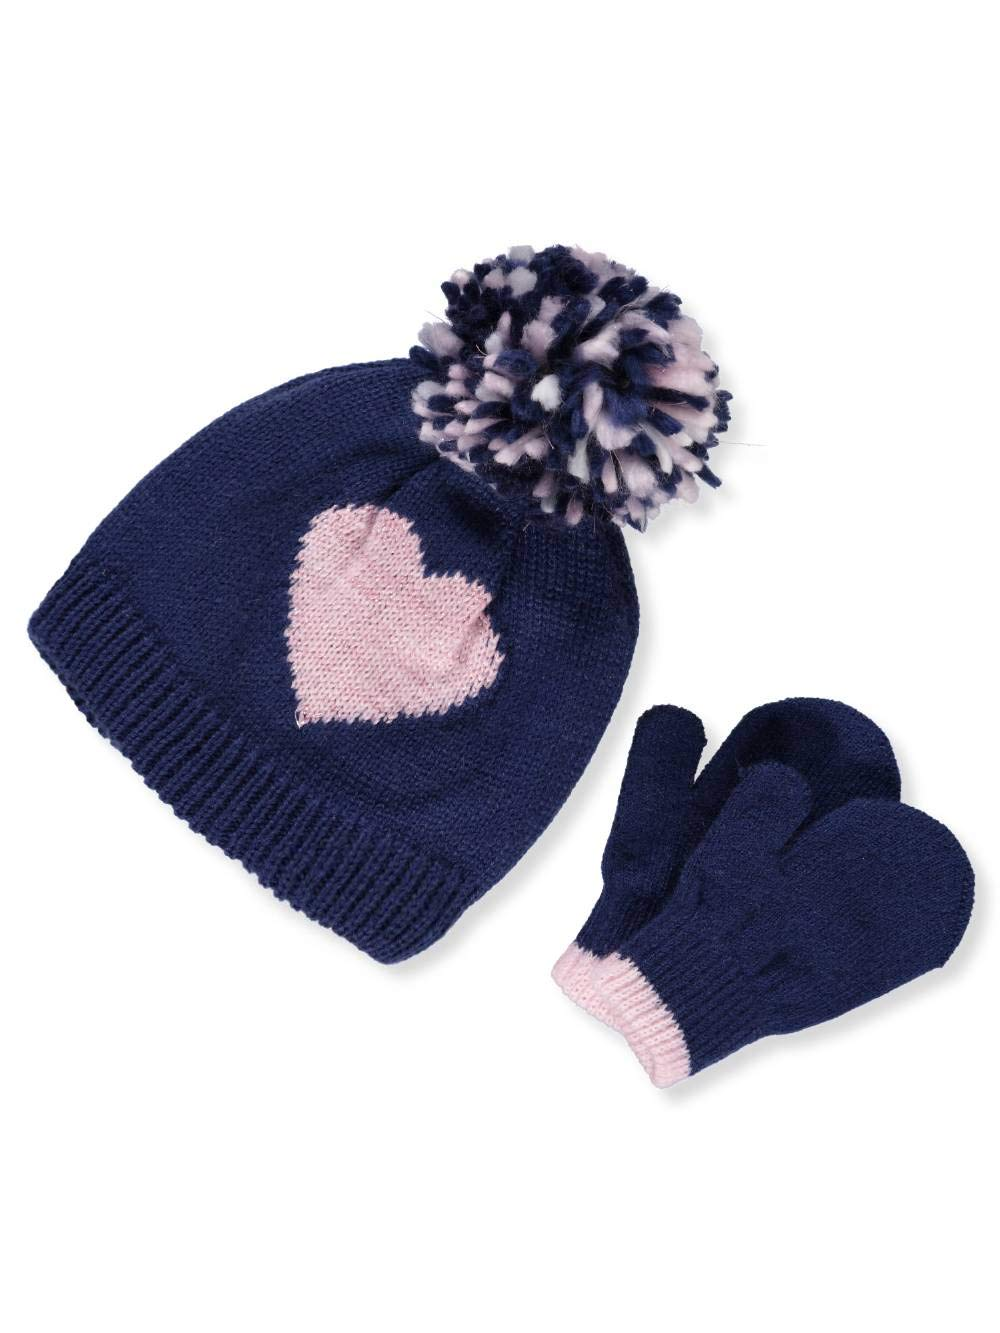 Carter's Baby Girls' Beanie & Mittens Set - navy, 0-9 months Carter' s